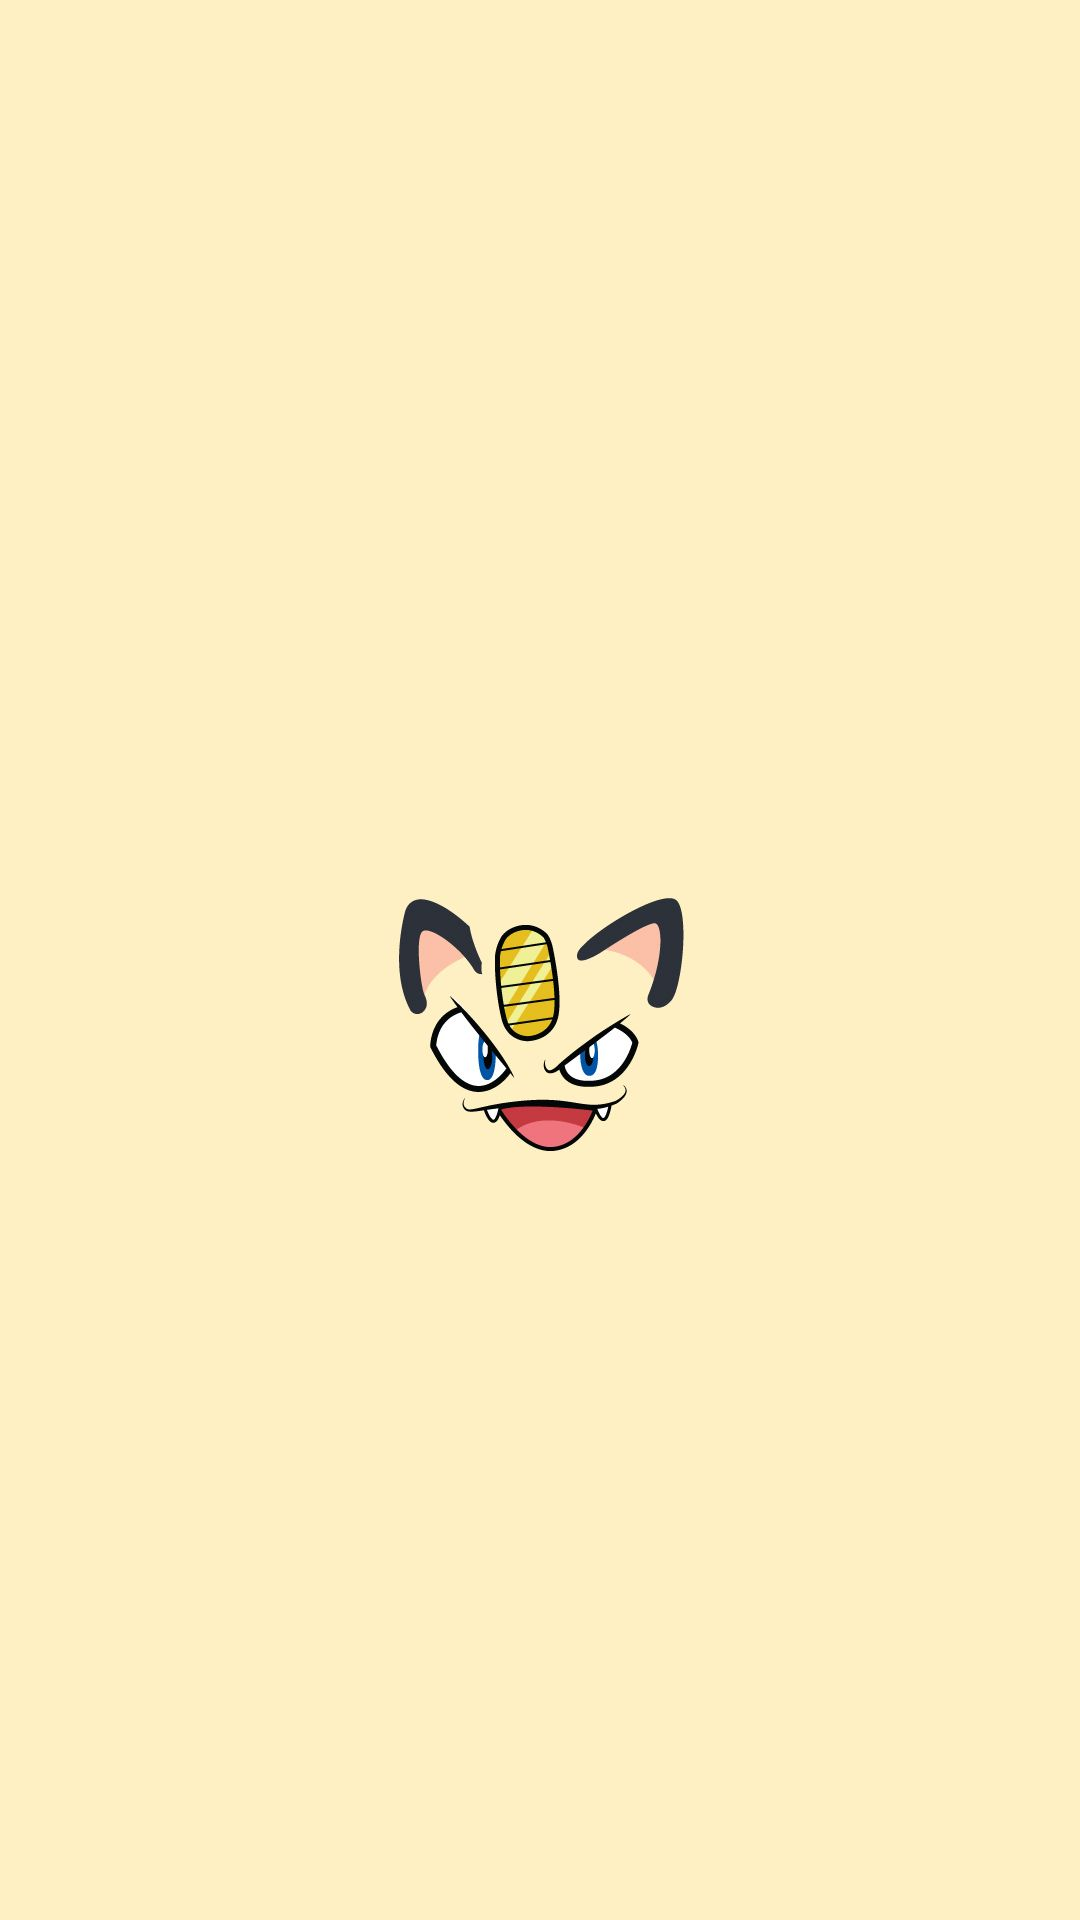 Meowth Pokemon Character iPhone 6+ HD Wallpaper 壁紙 かわいい